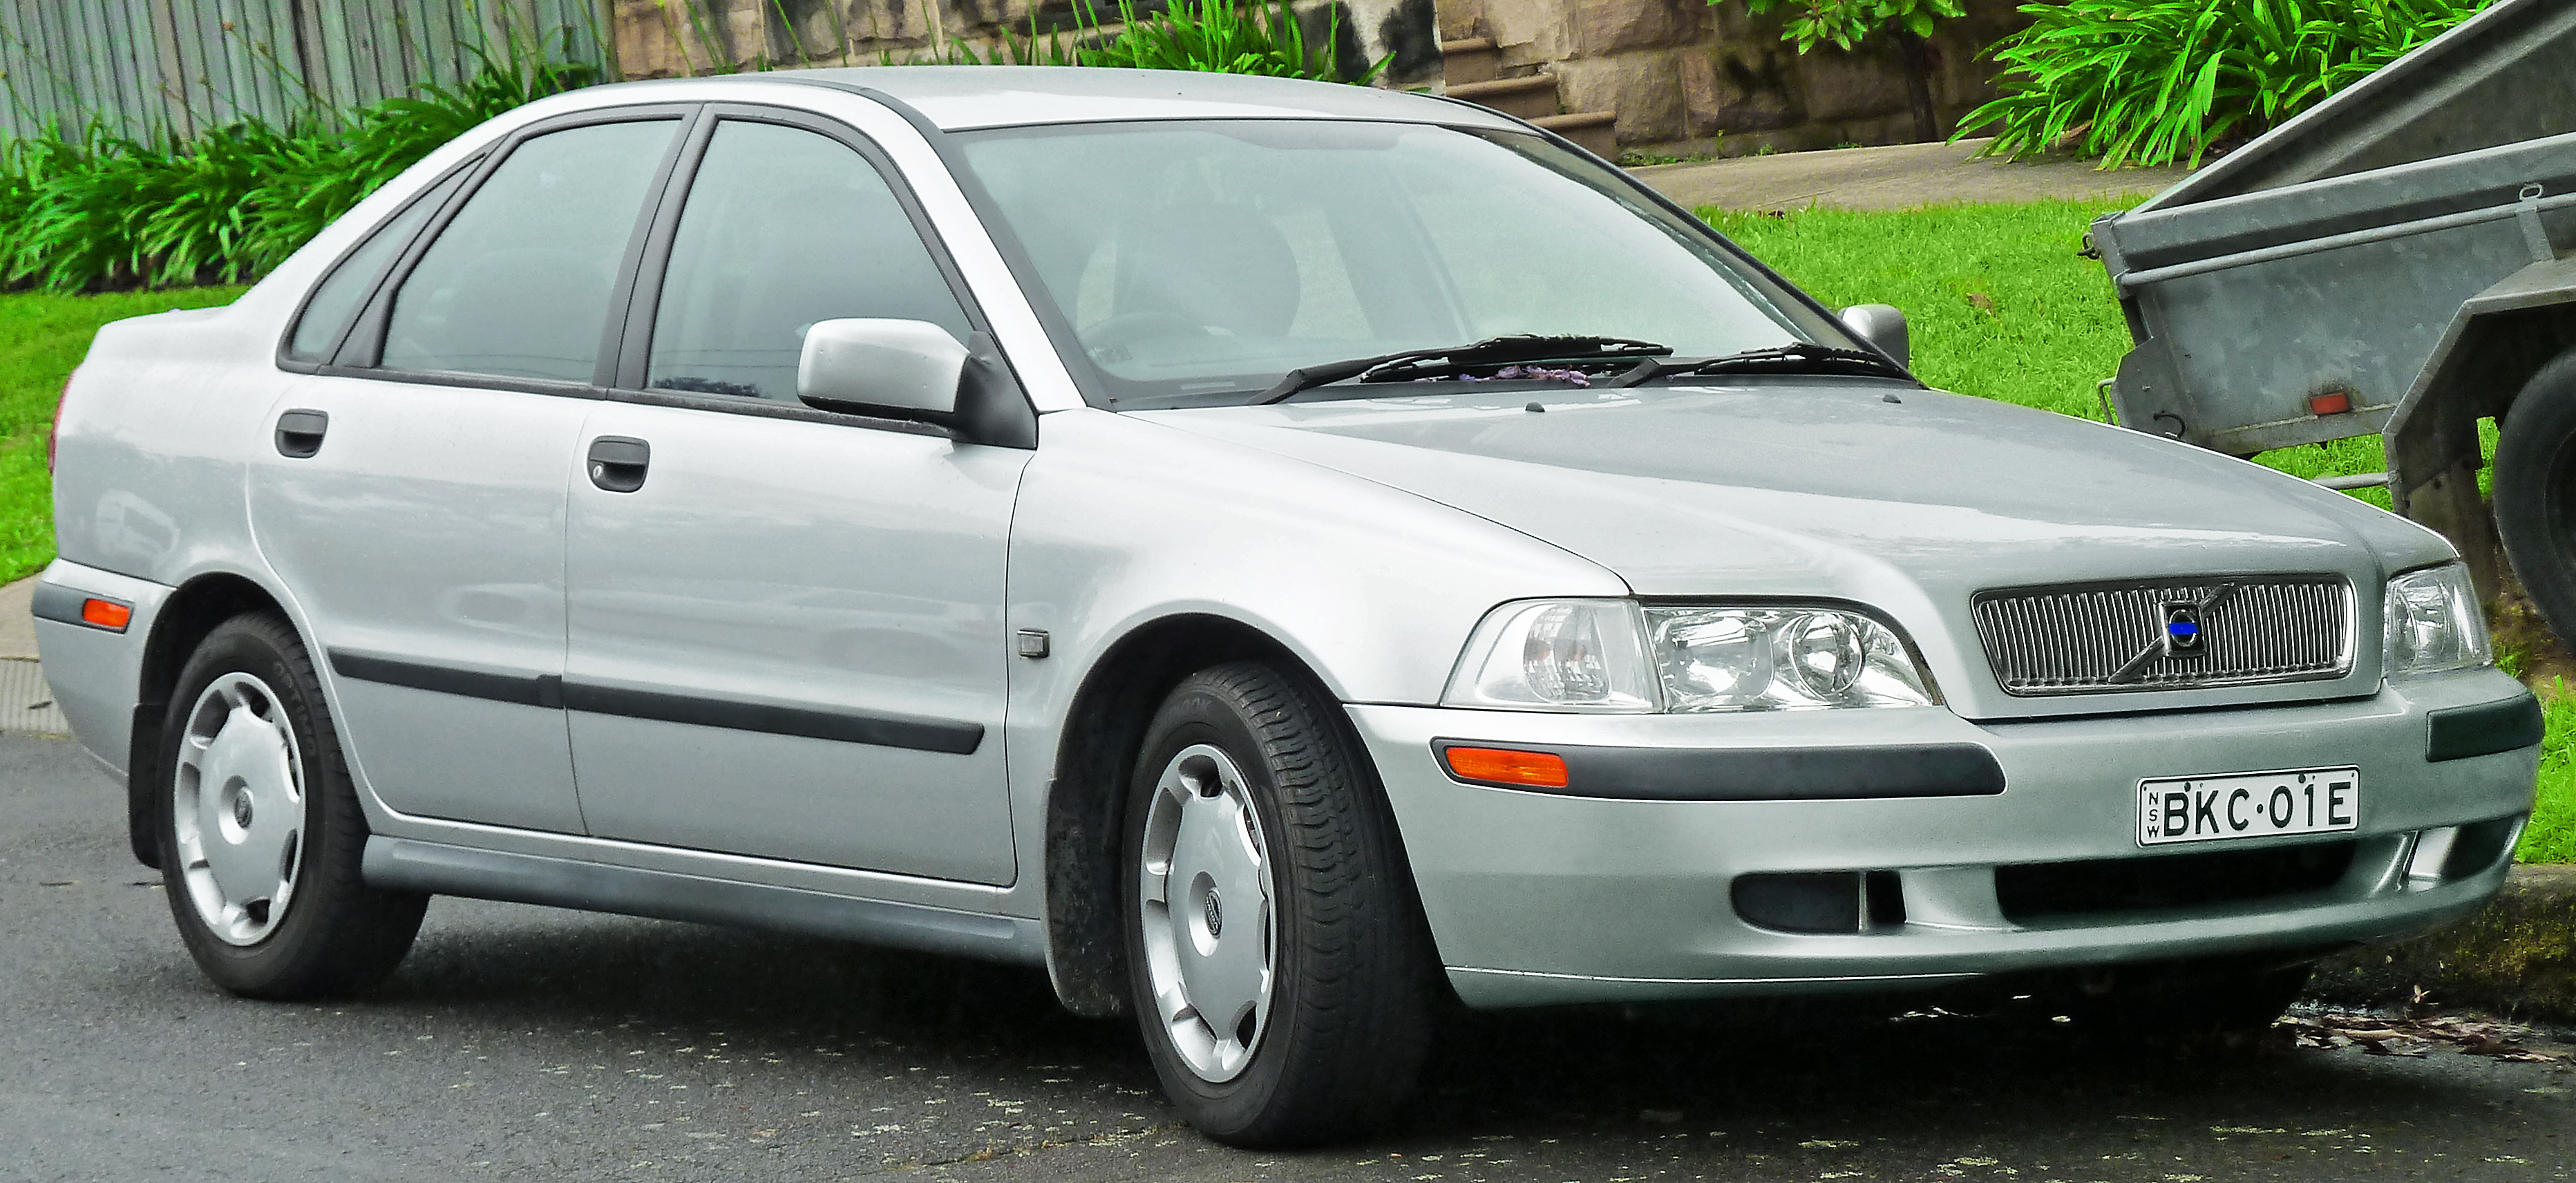 2003 Volvo S40 2.0D related infomation,specifications - WeiLi Automotive Network